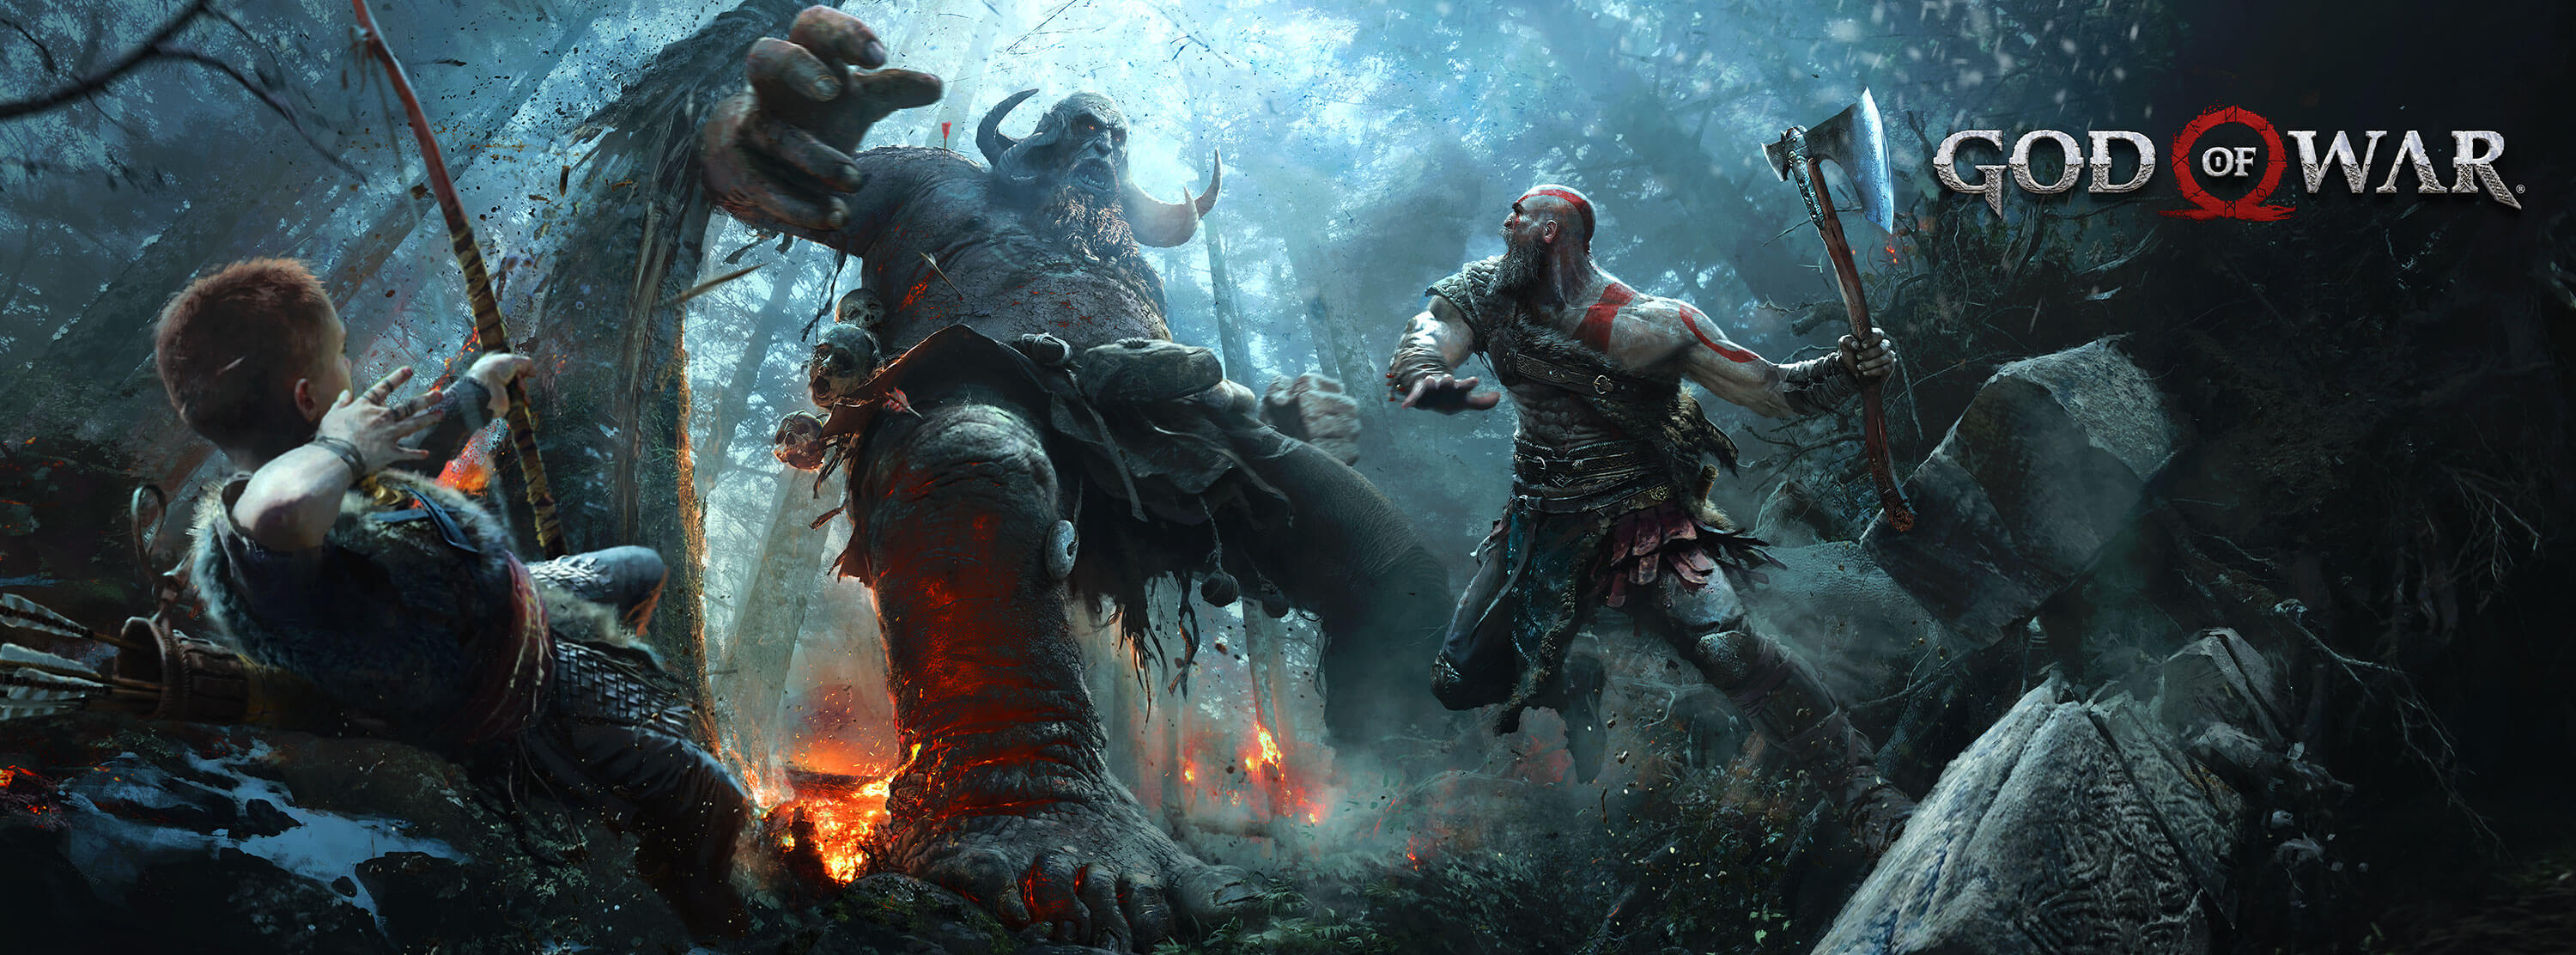 63 god of war (2018) hd wallpapers | background images - wallpaper abyss